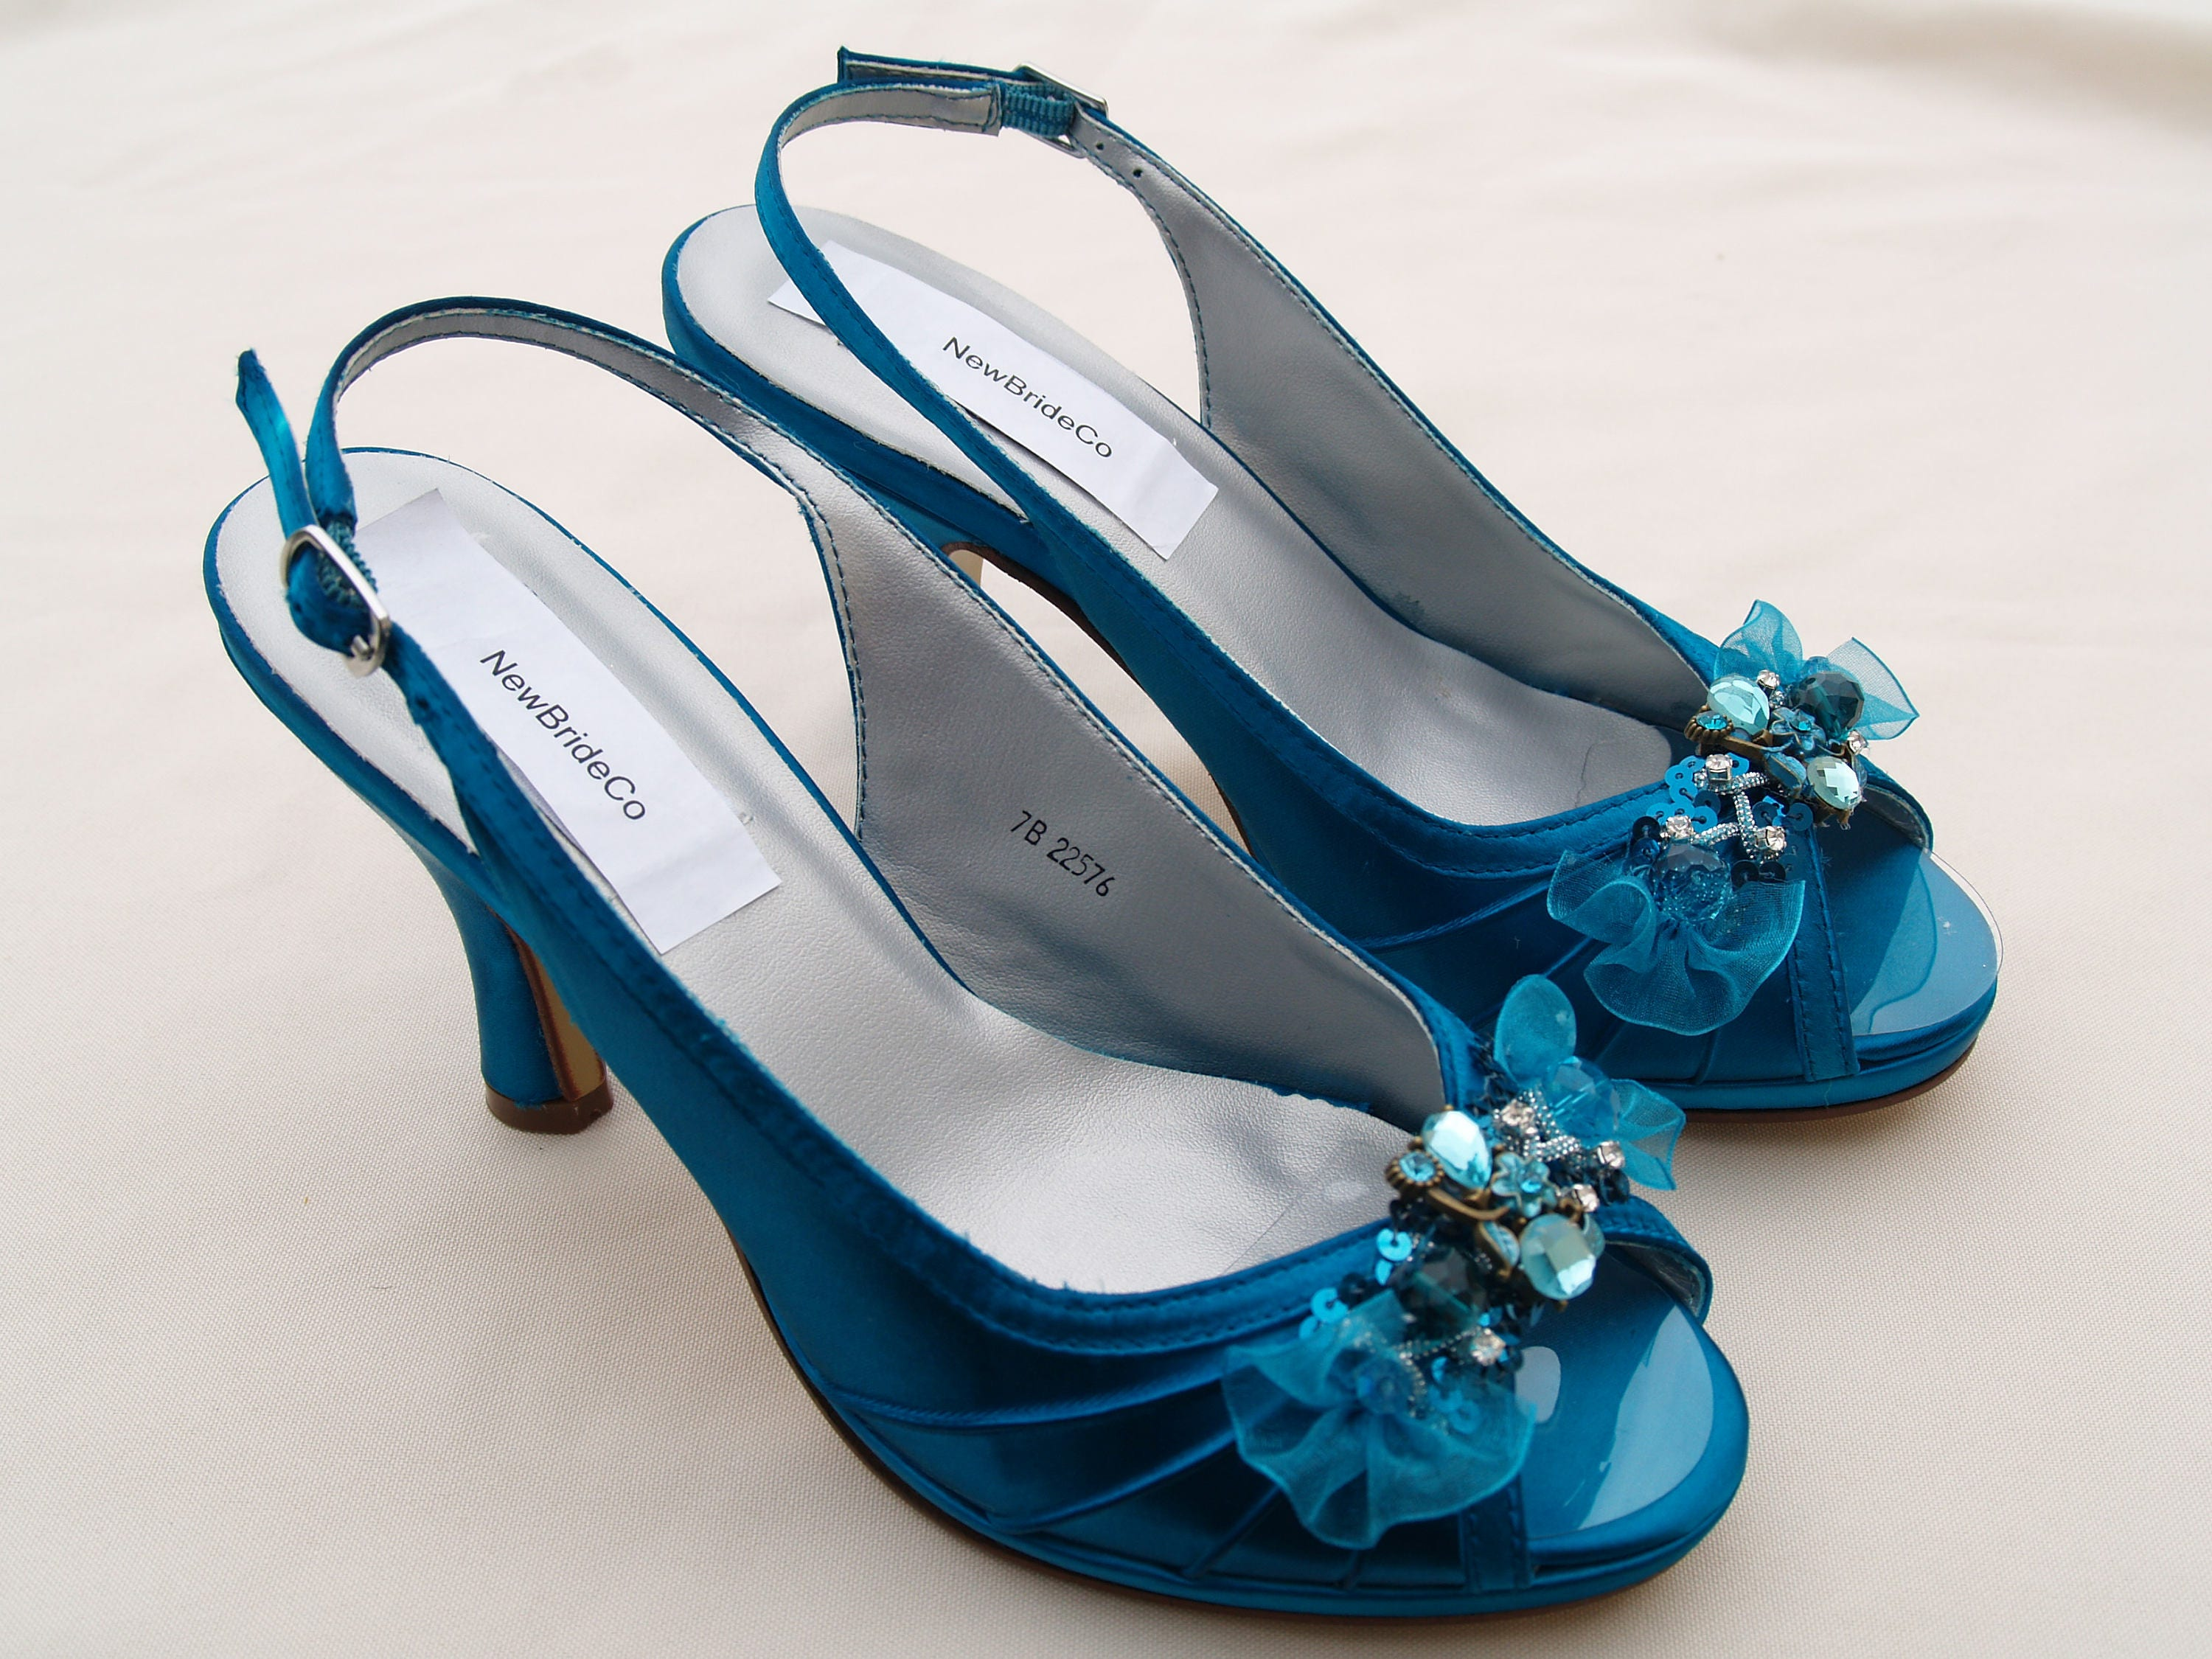 Teal Wedding Shoes 021 - Teal Wedding Shoes